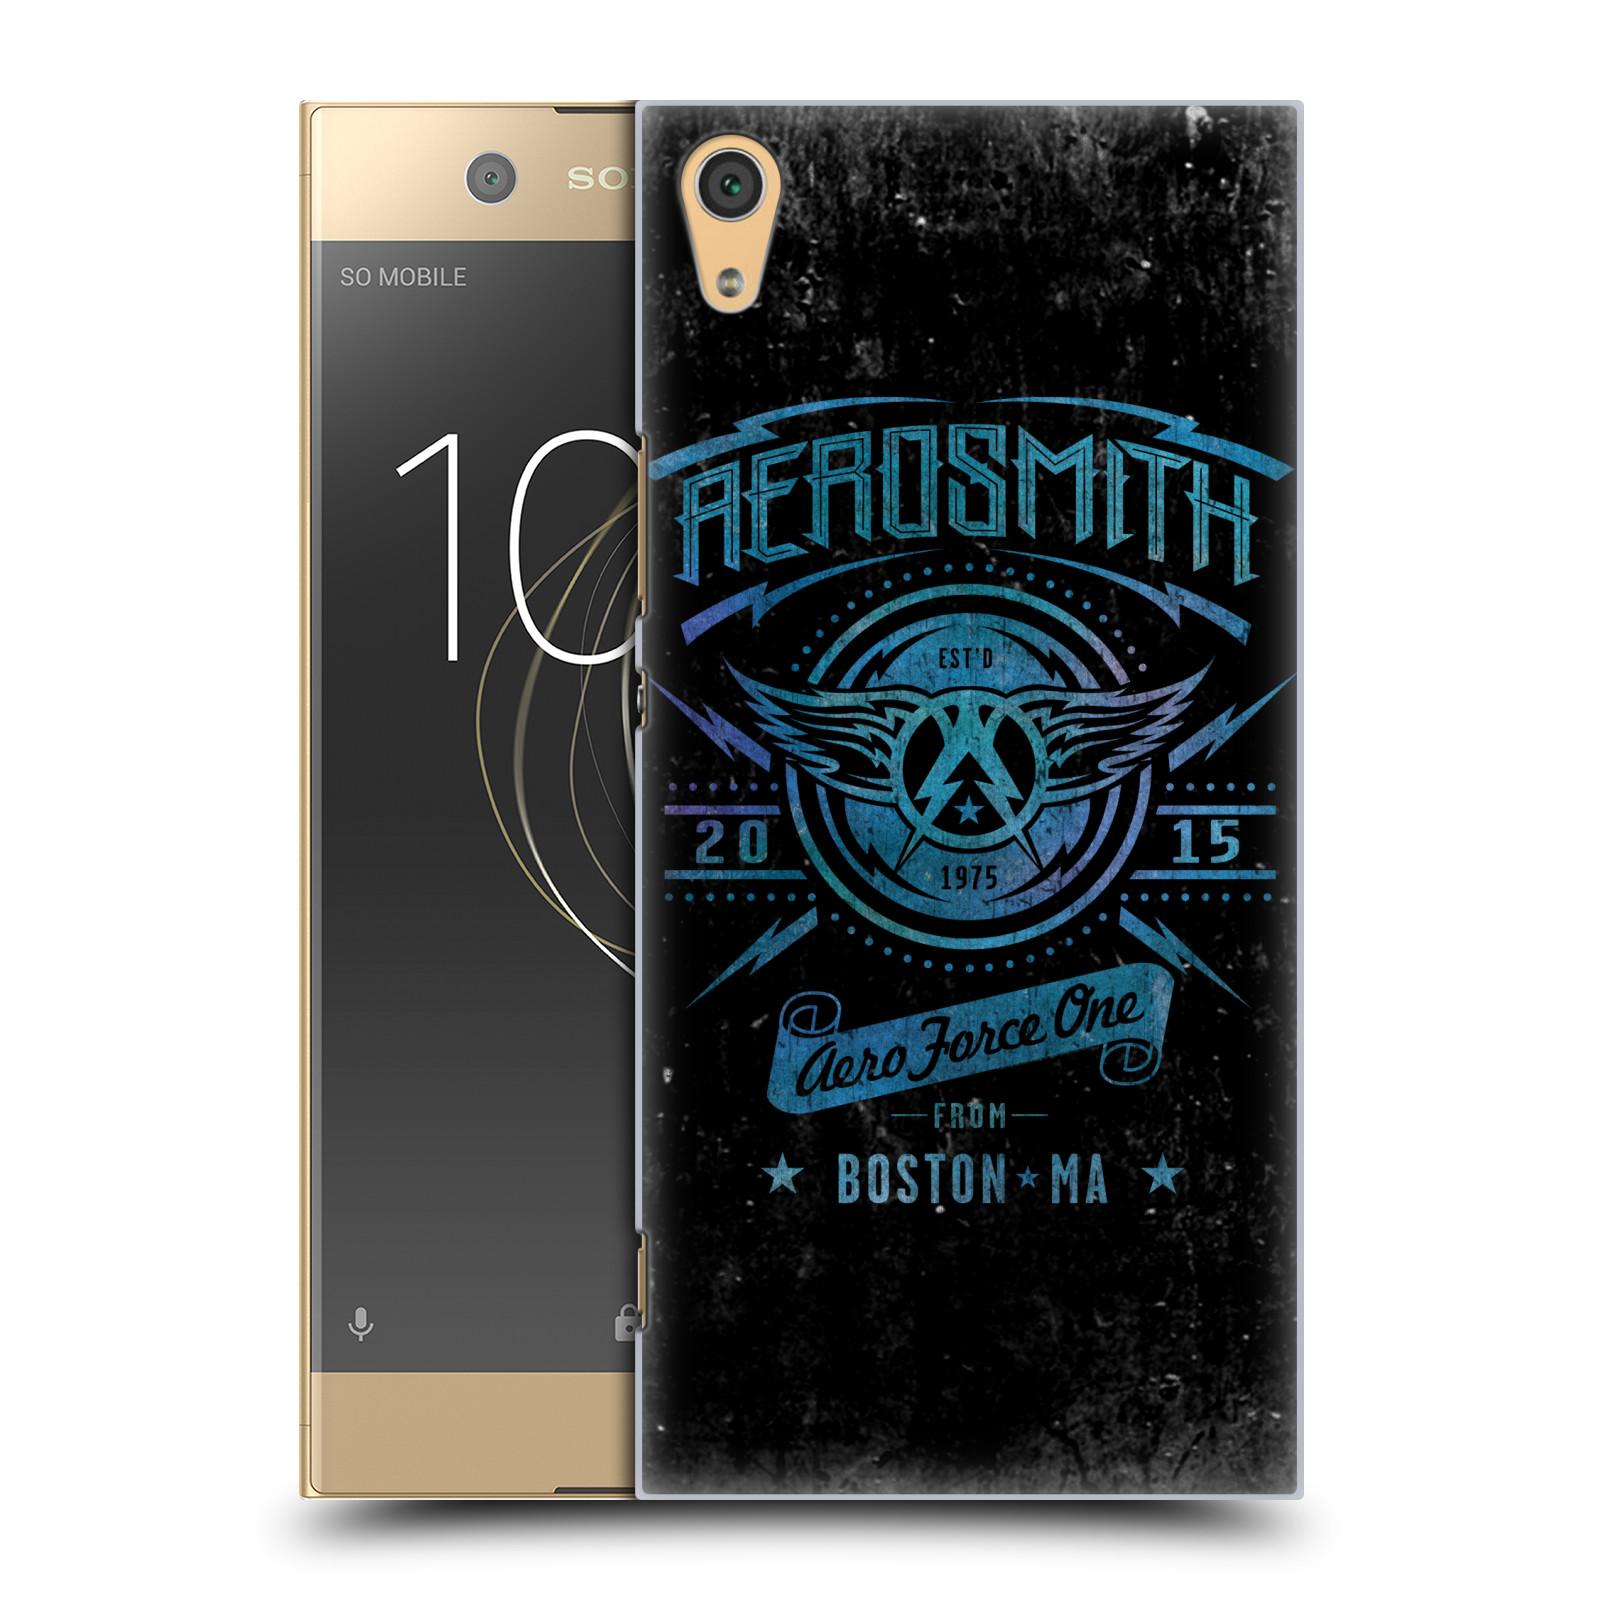 Plastové pouzdro na mobil Sony Xperia XA1 Ultra - Head Case - Aerosmith - Aero Force One